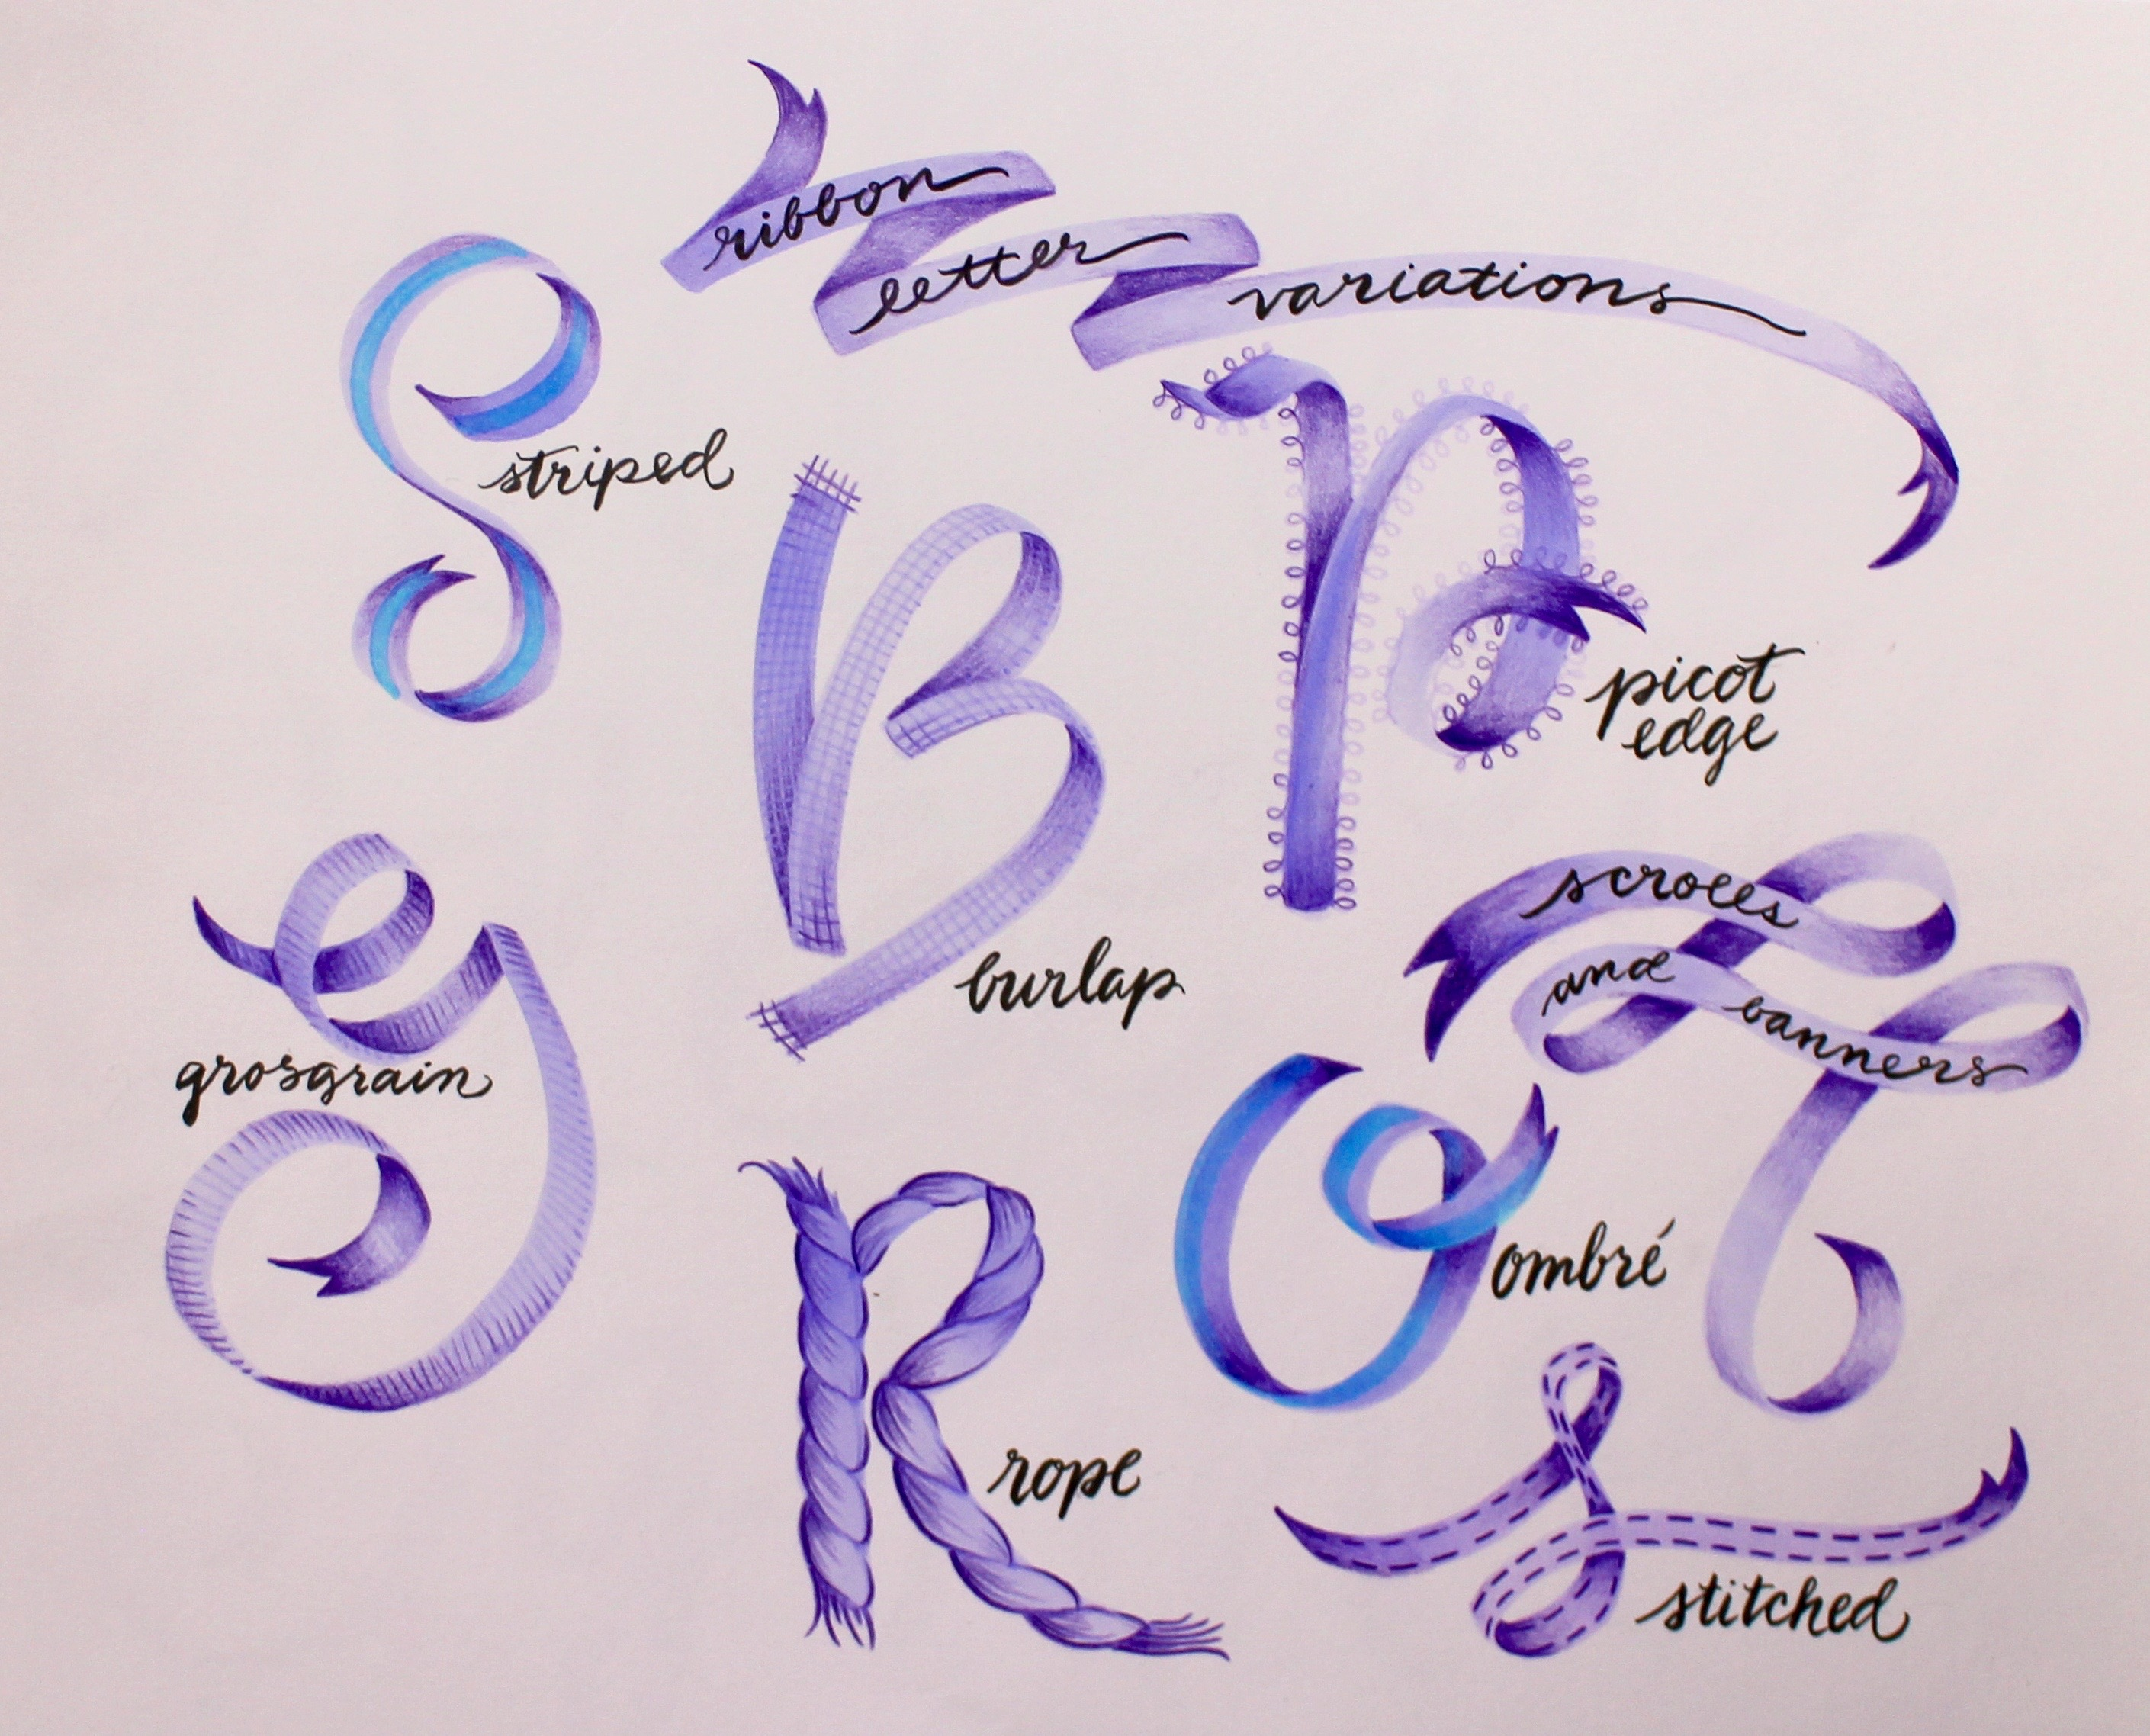 Ribbon Lettering examples of variations